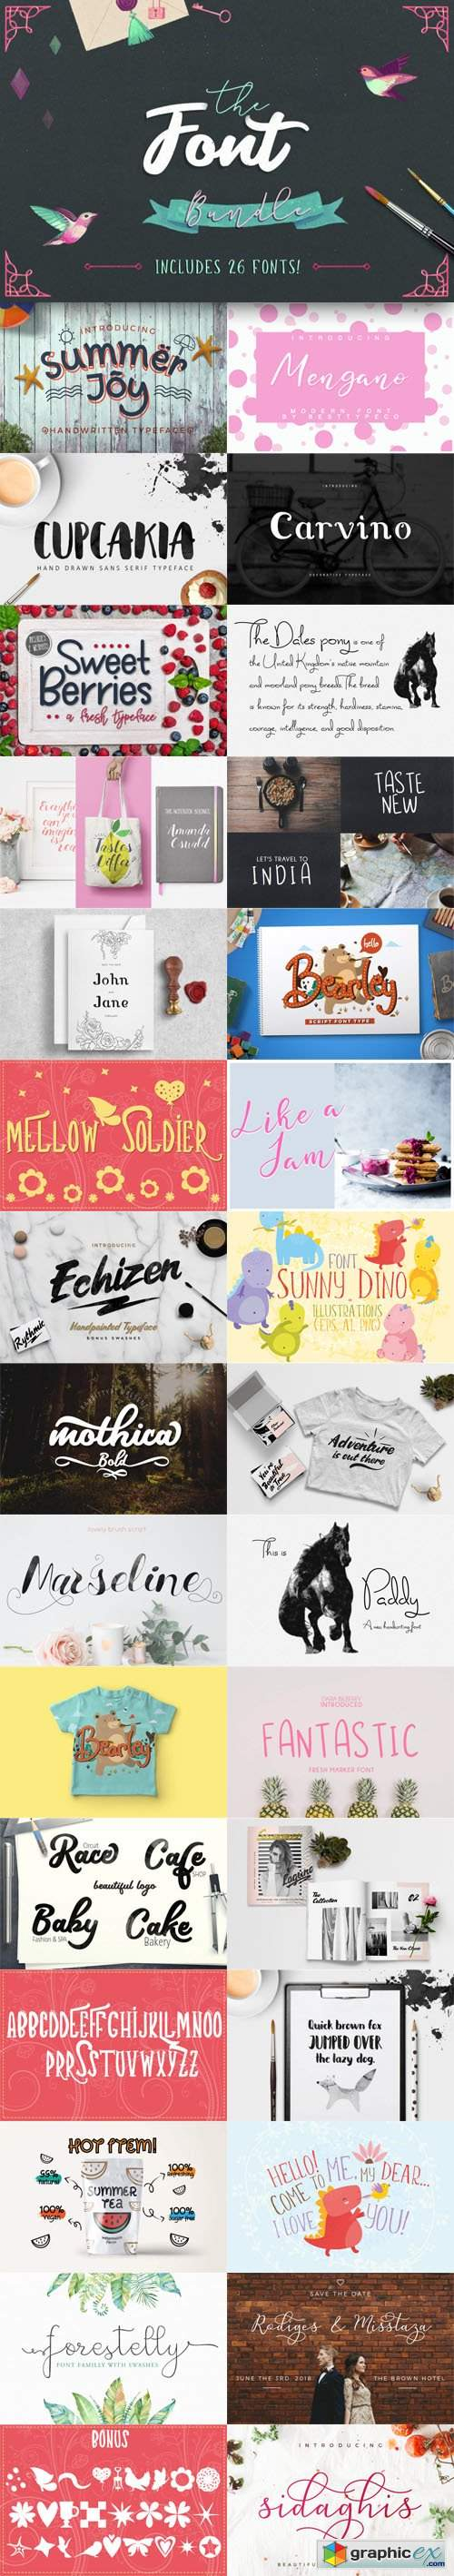 TheHungryJPEG - The Font Bundle (Worth $104!)